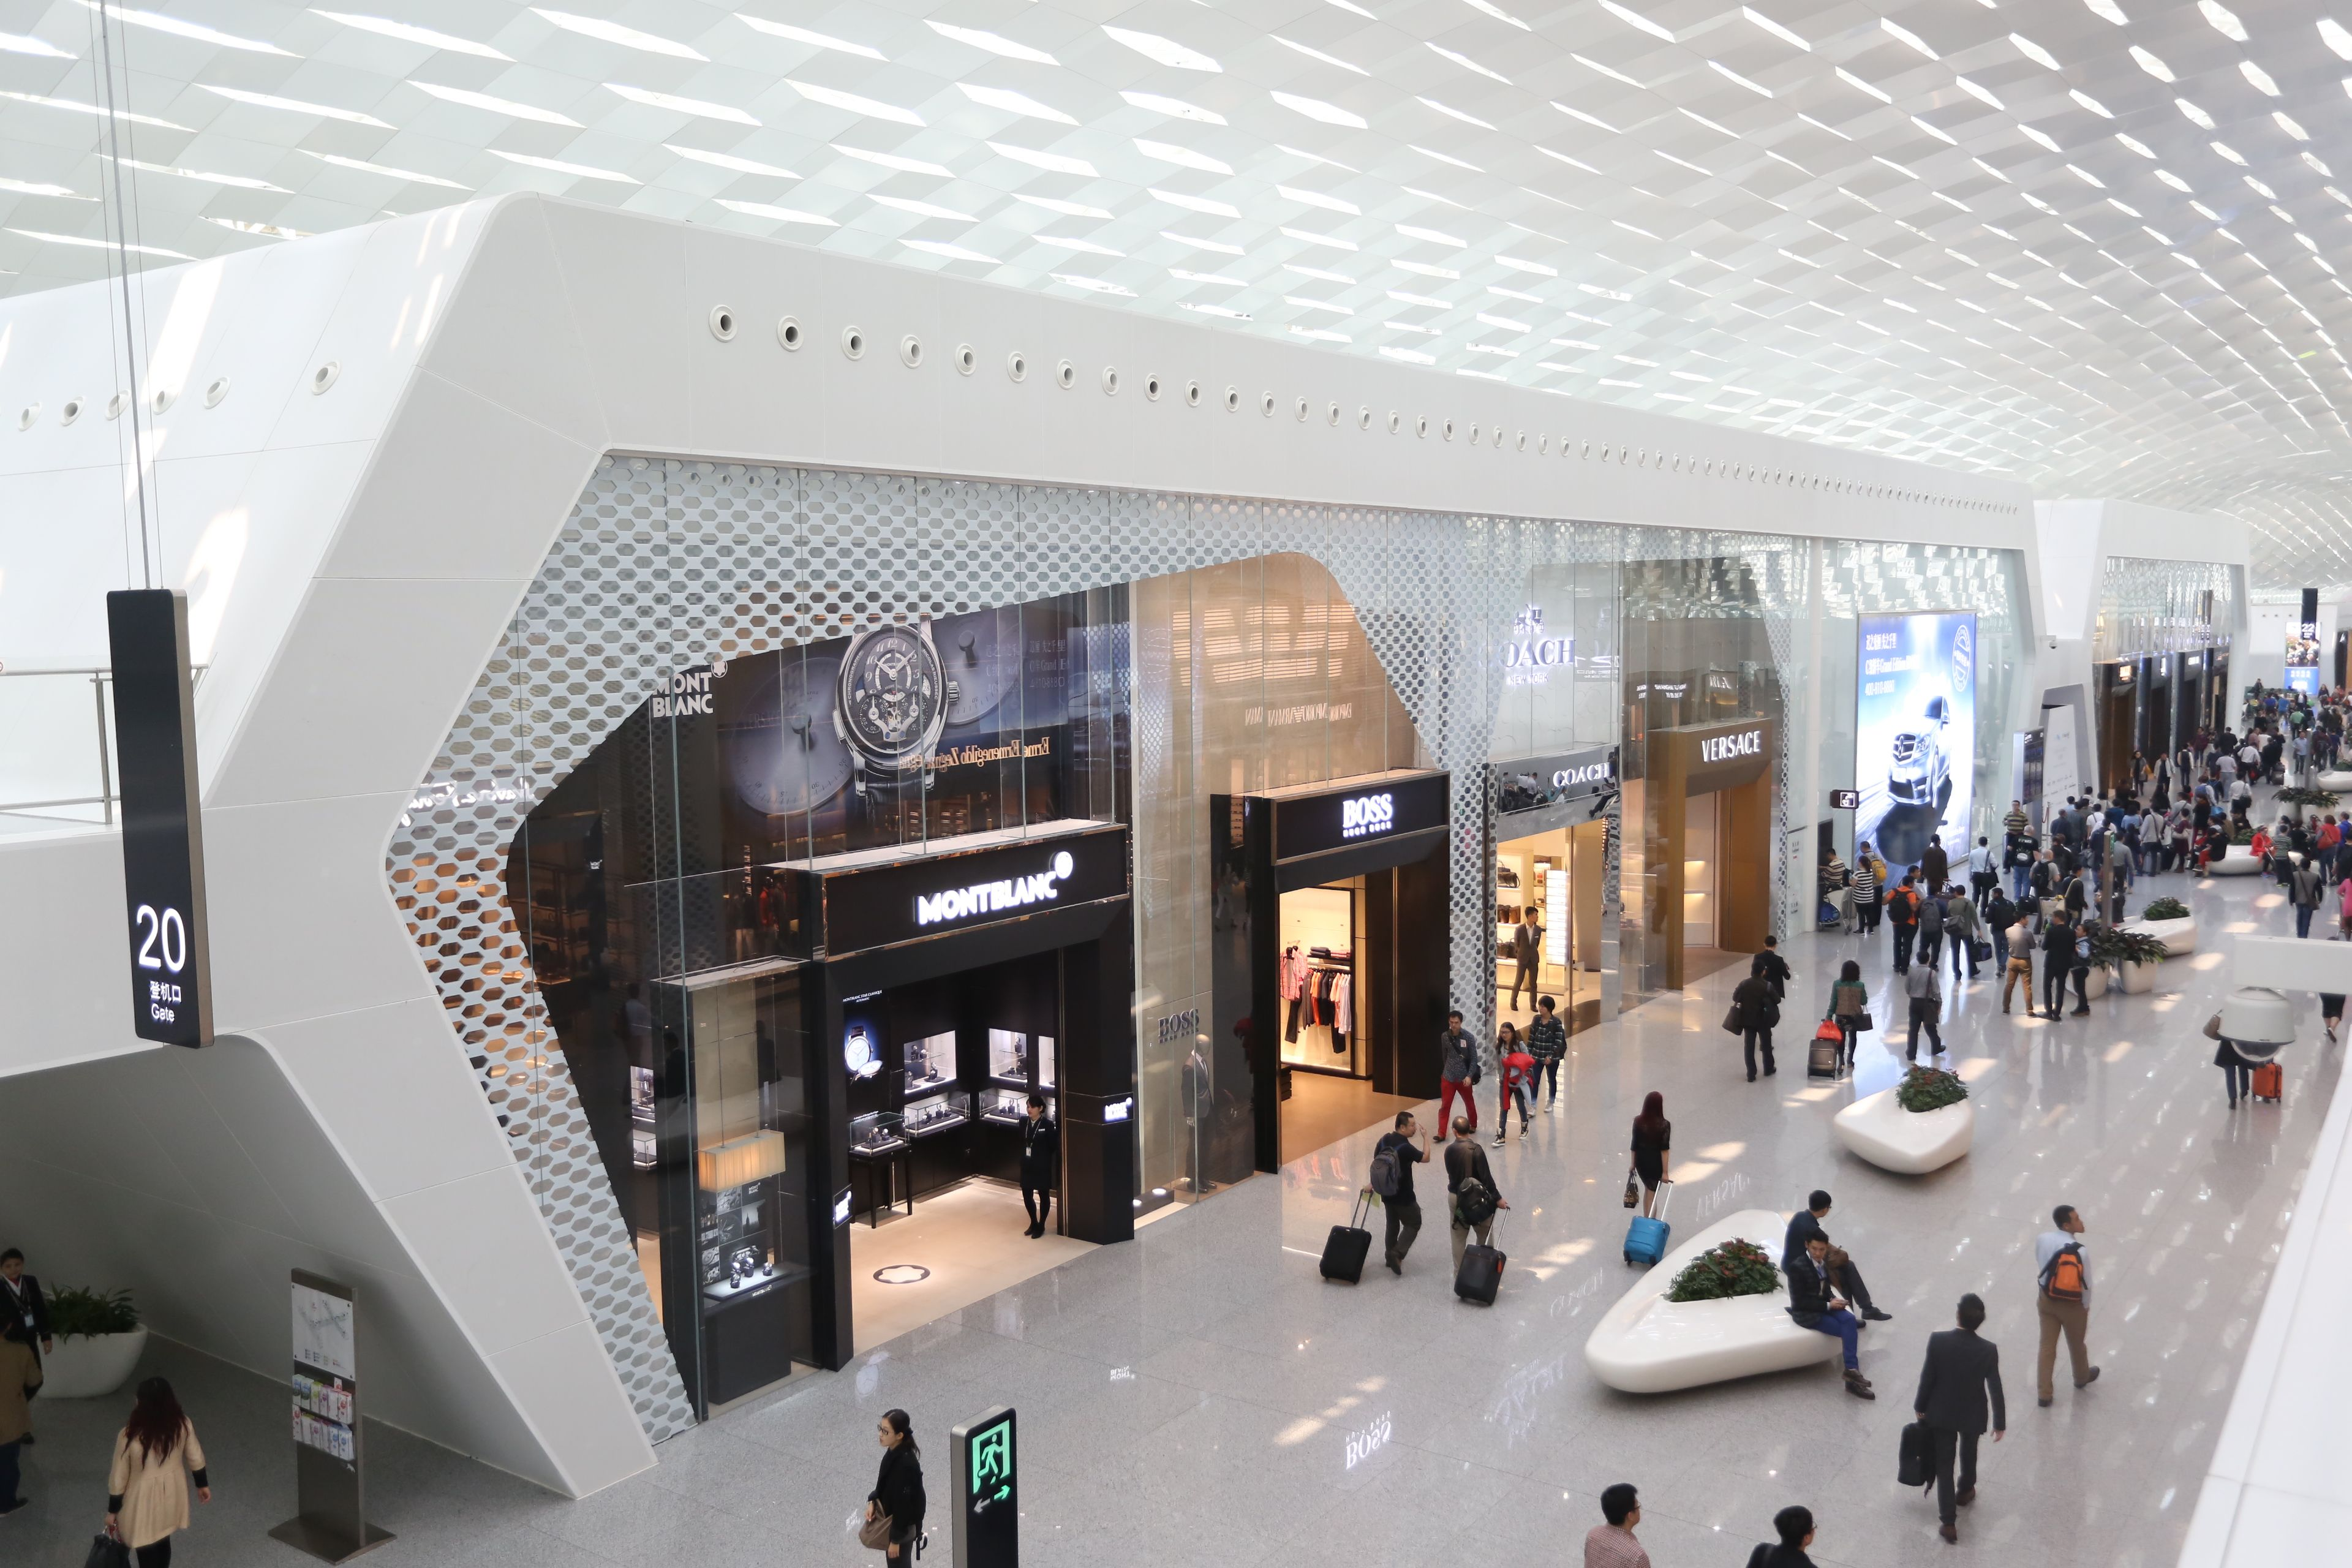 Pin by Alex Z on Commercial Space in 2019 | Shopping mall ...